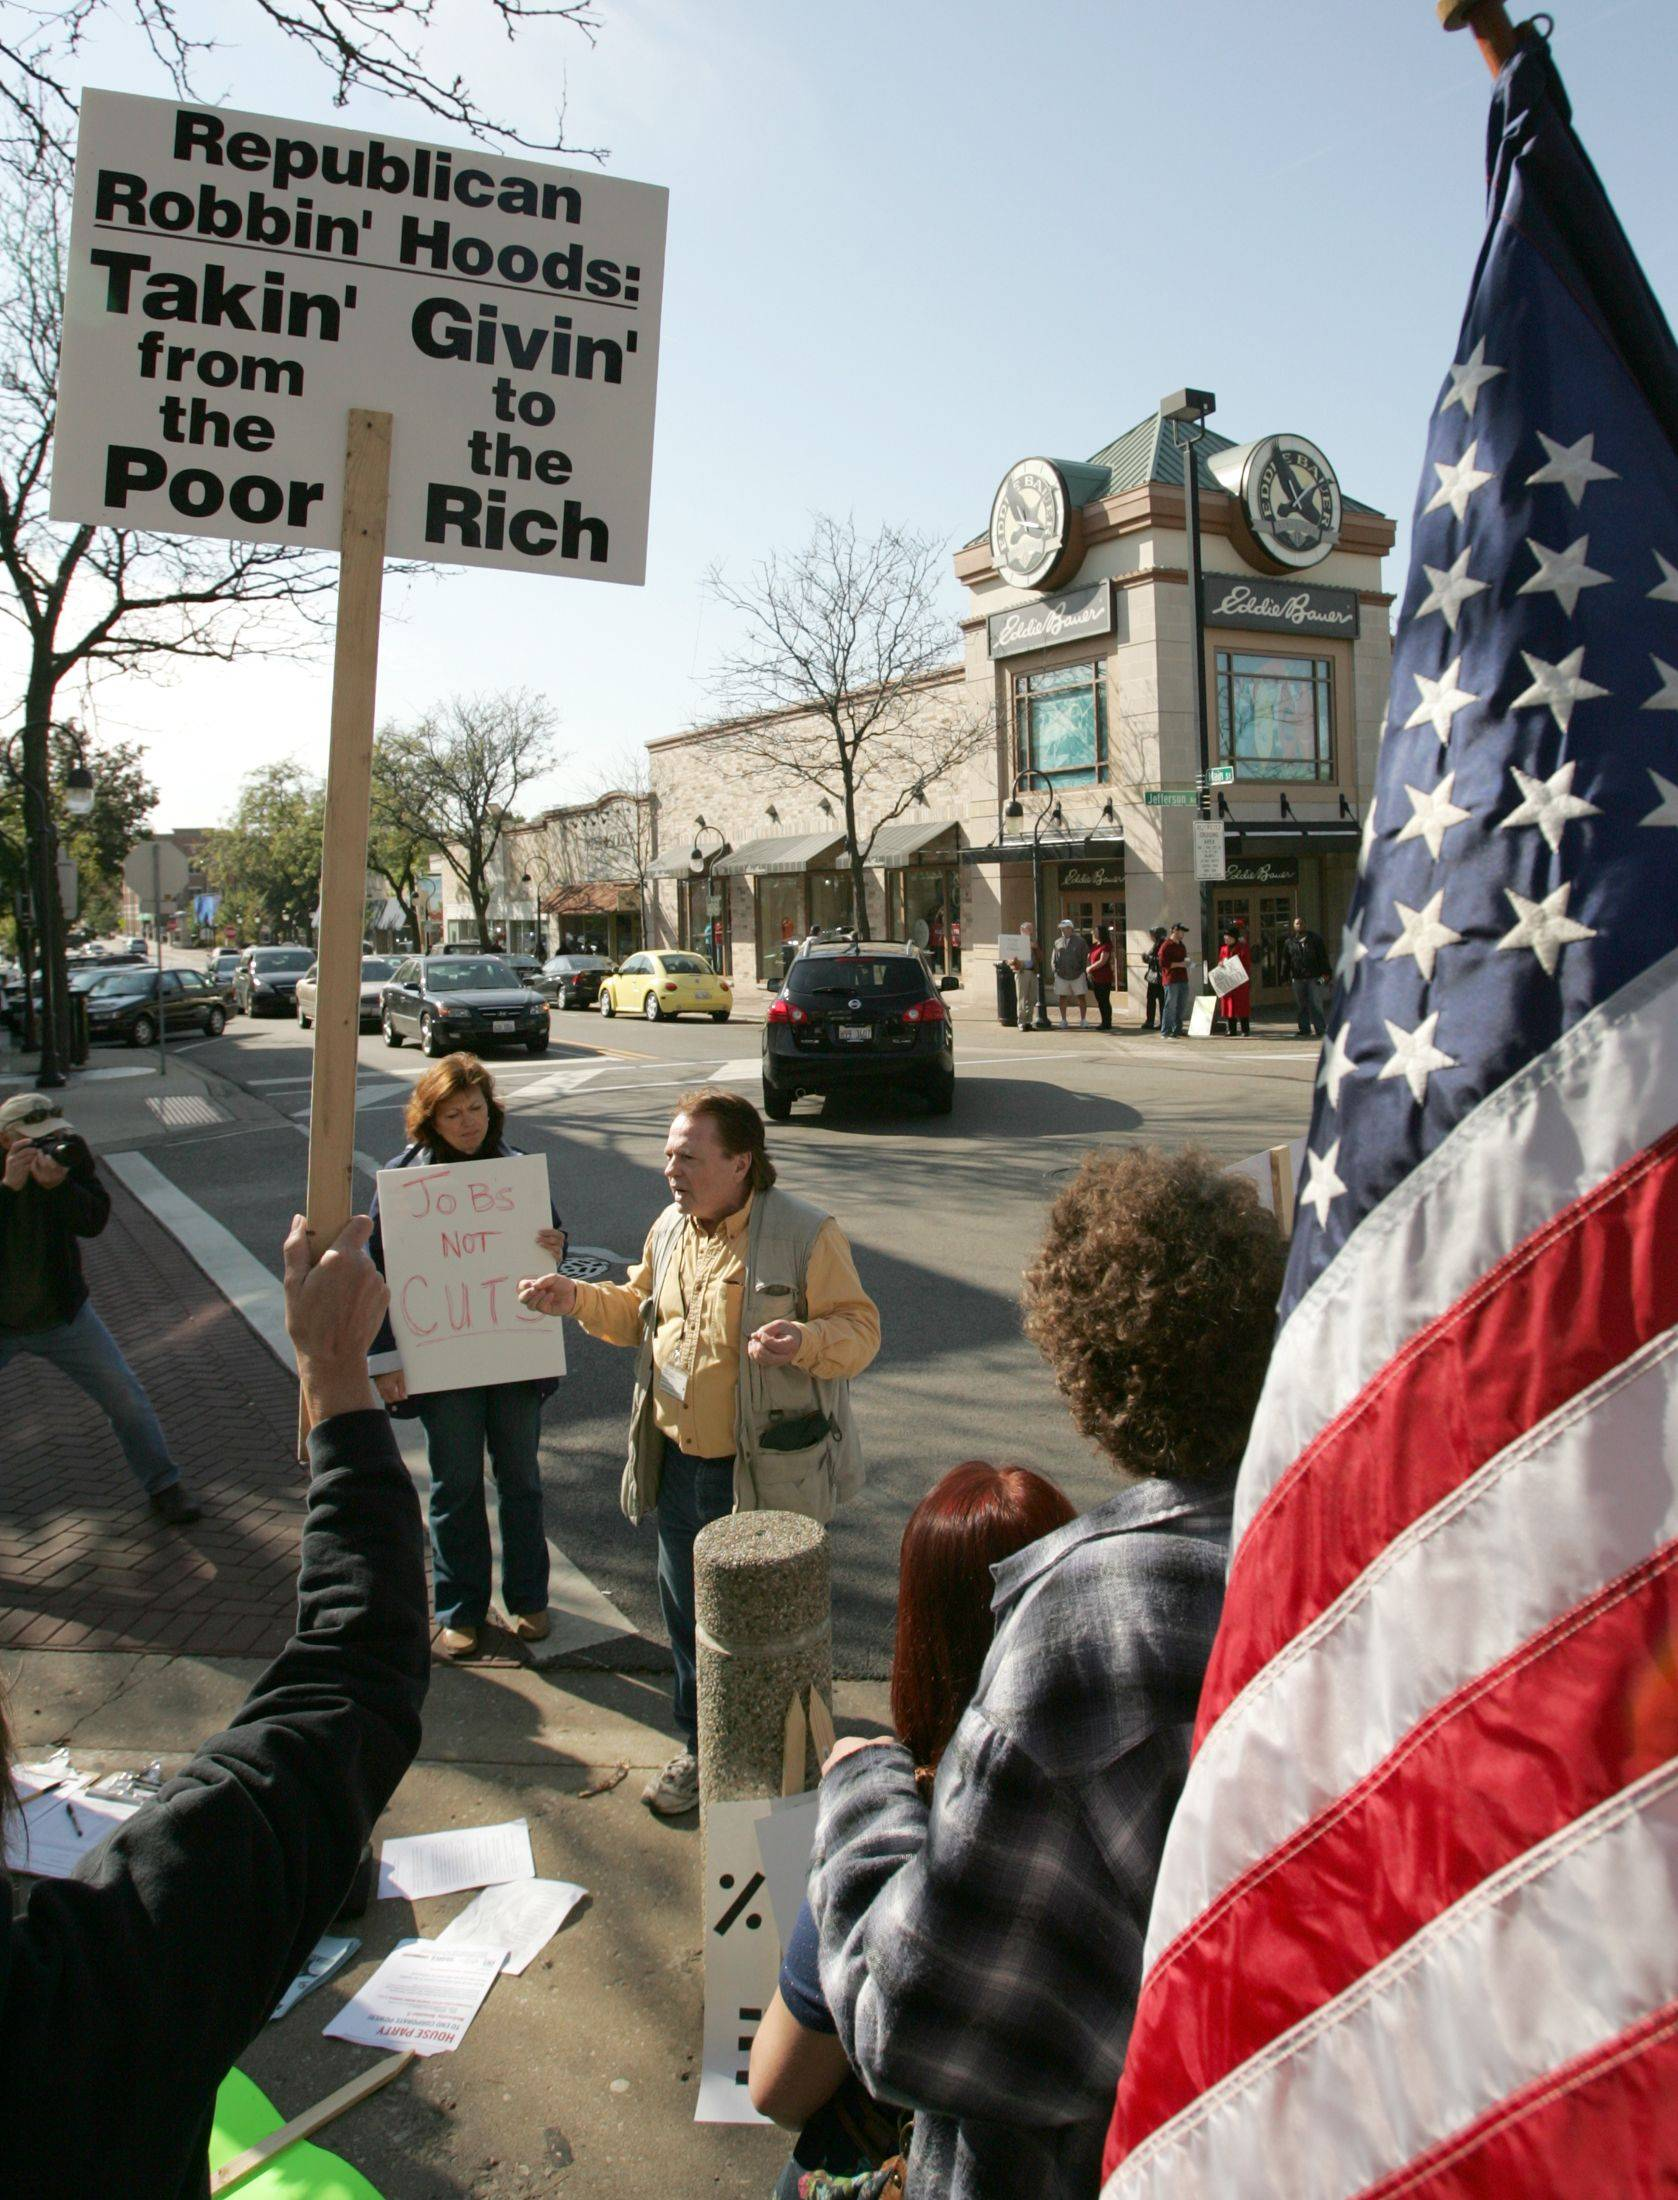 50 protesters 'Occupy' Naperville